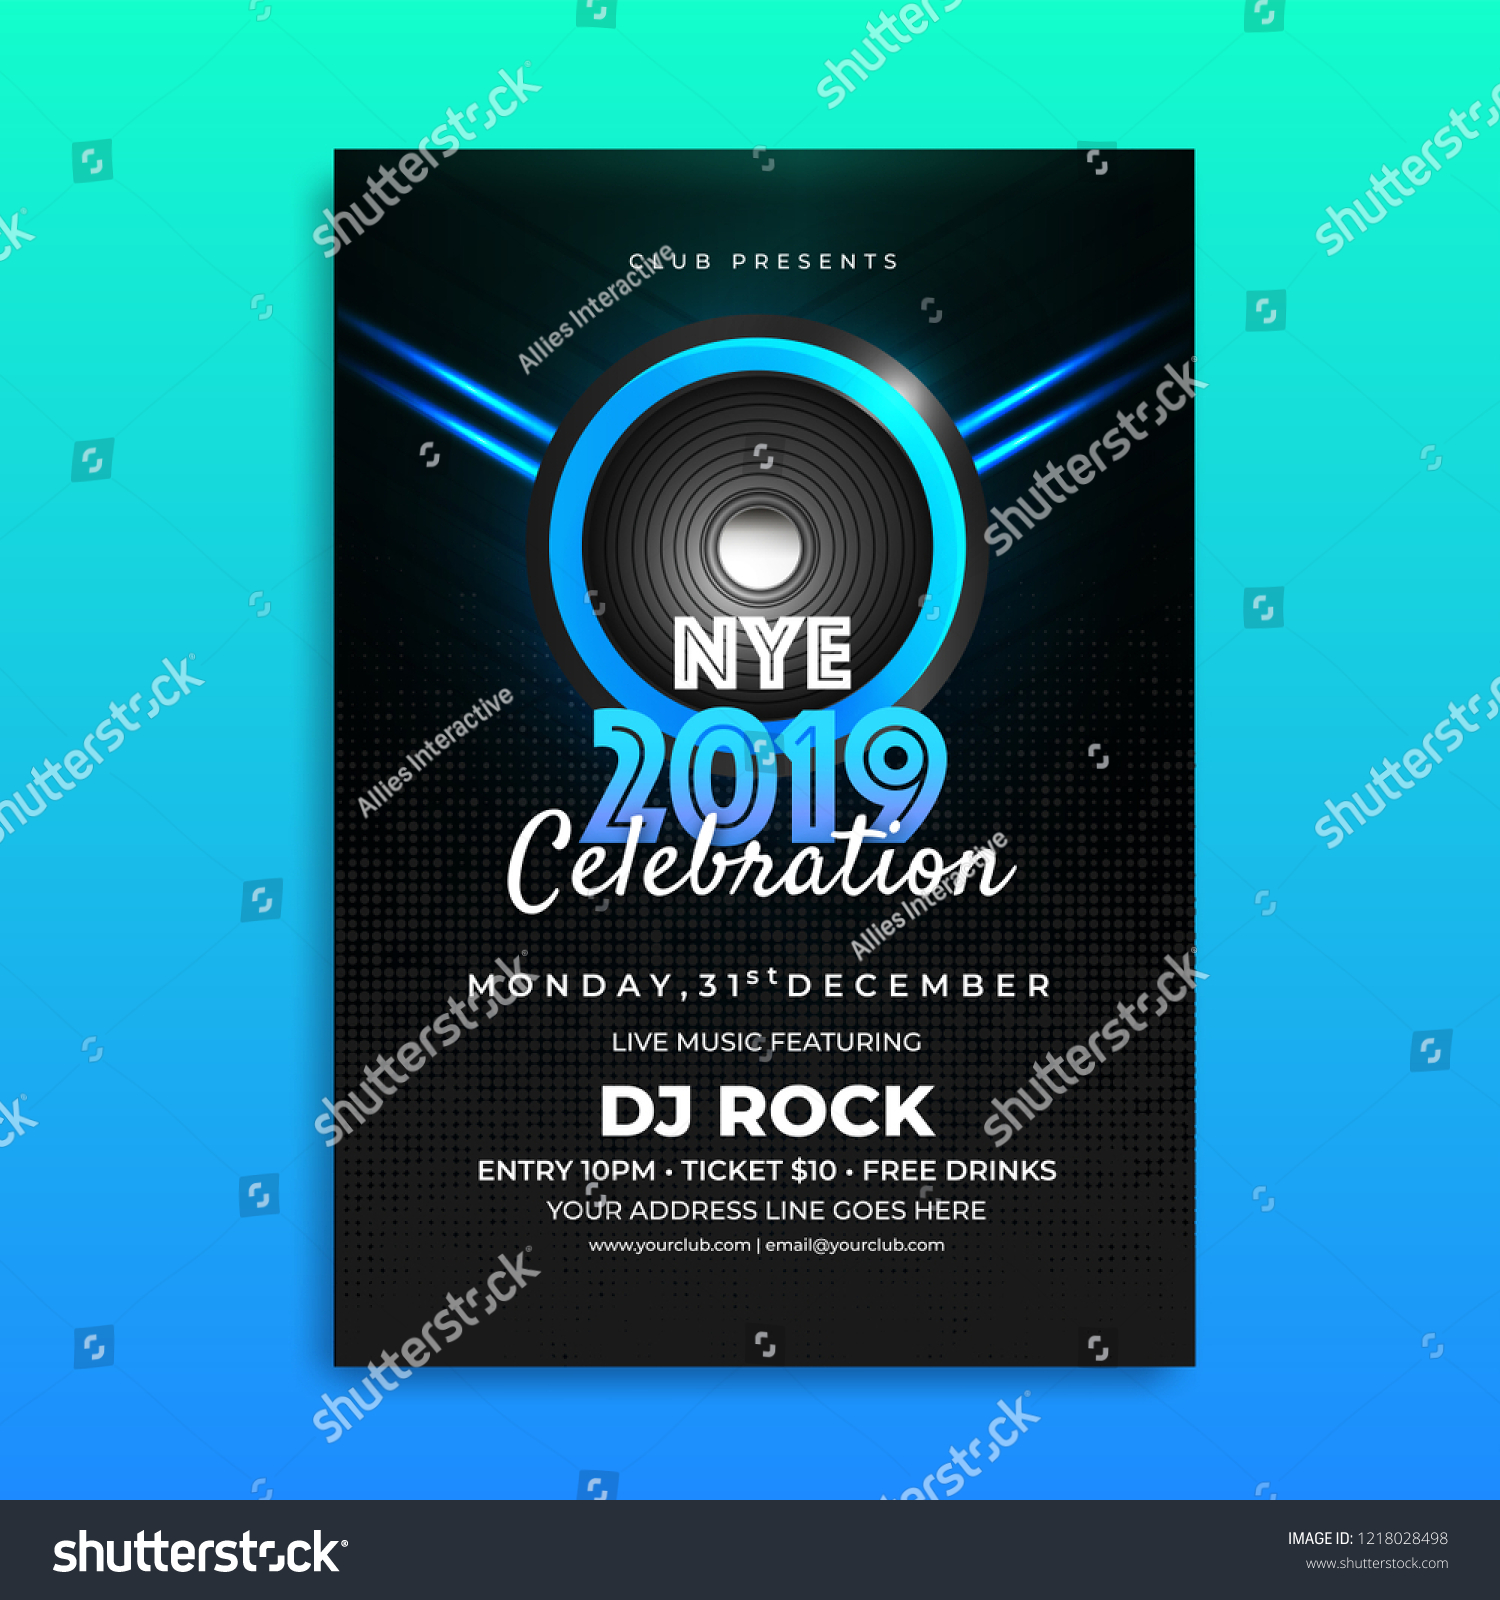 nye new year eve 2019 celebration template design with time date and venue